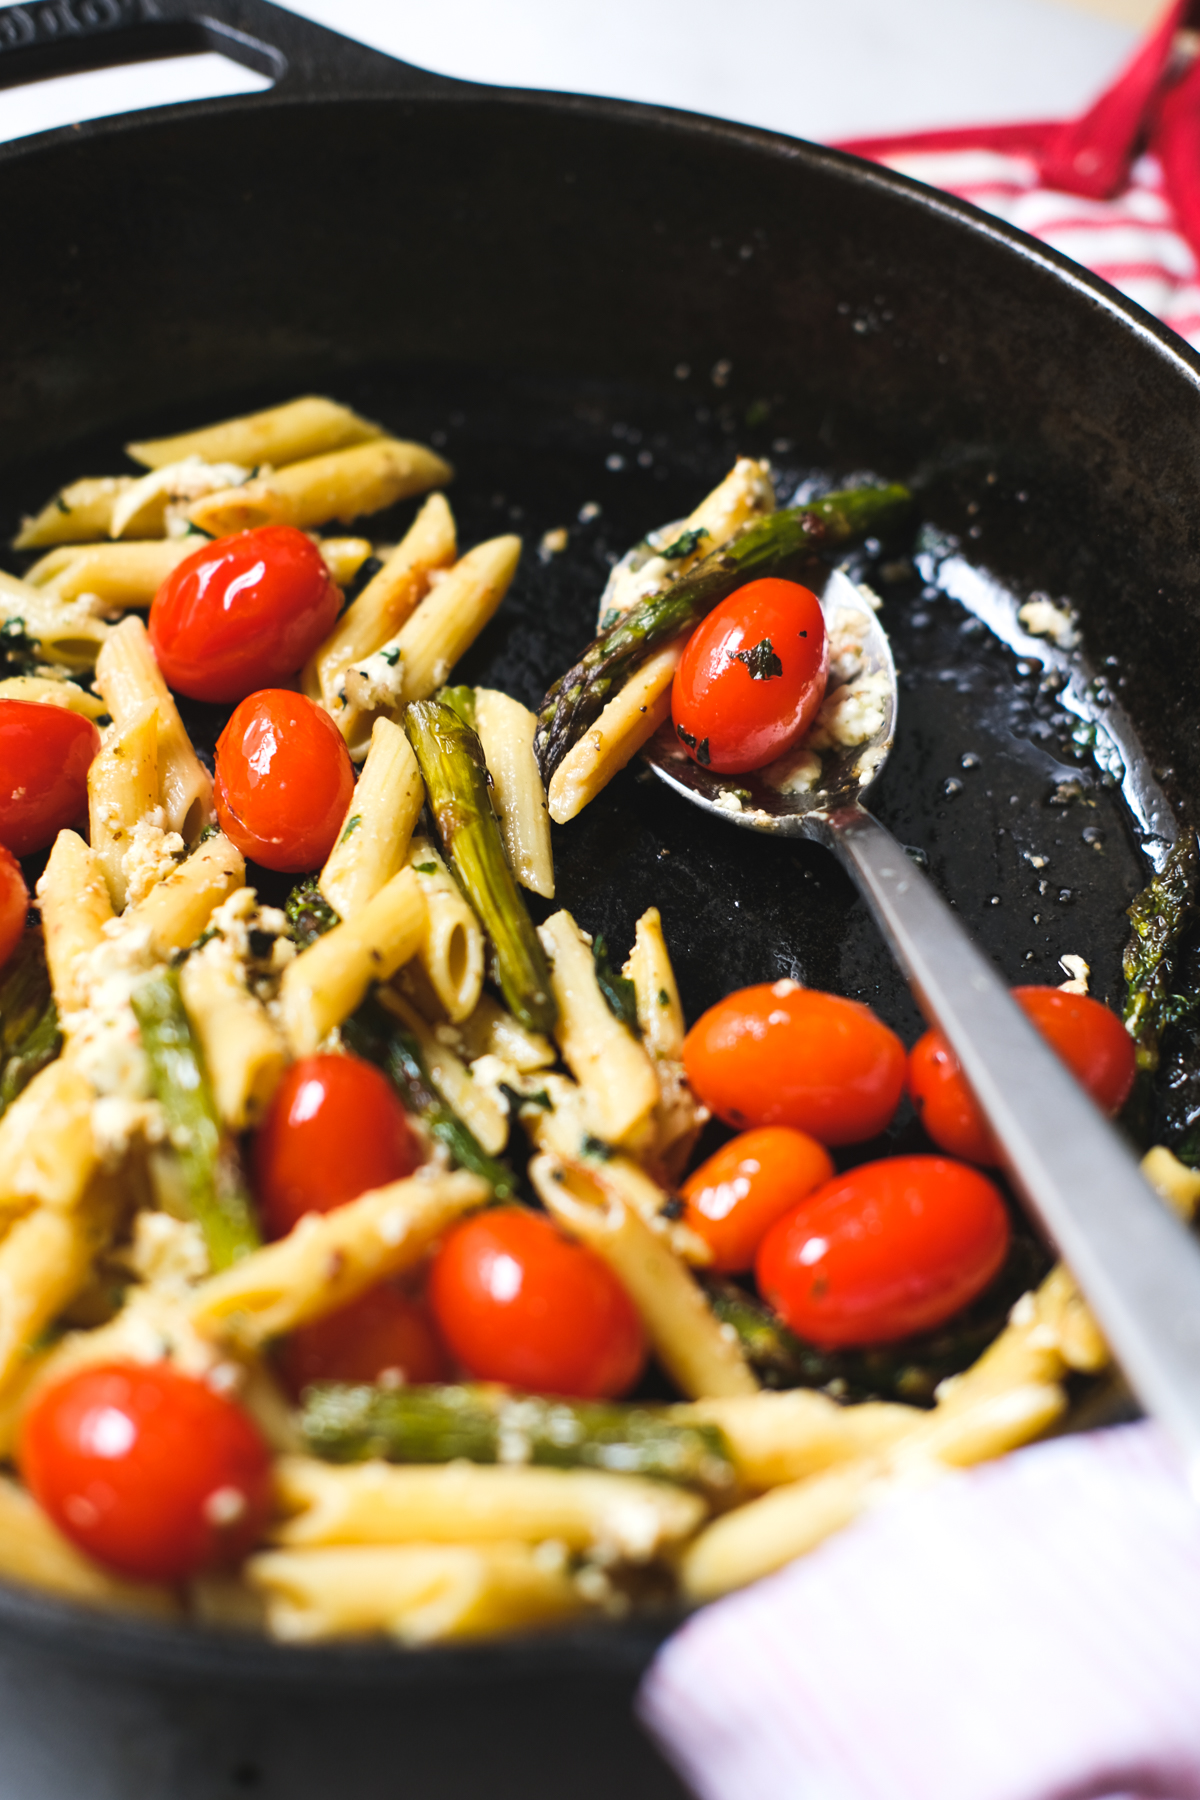 mixed ingredients for a baked feta pasta with tomatoes and asparagus